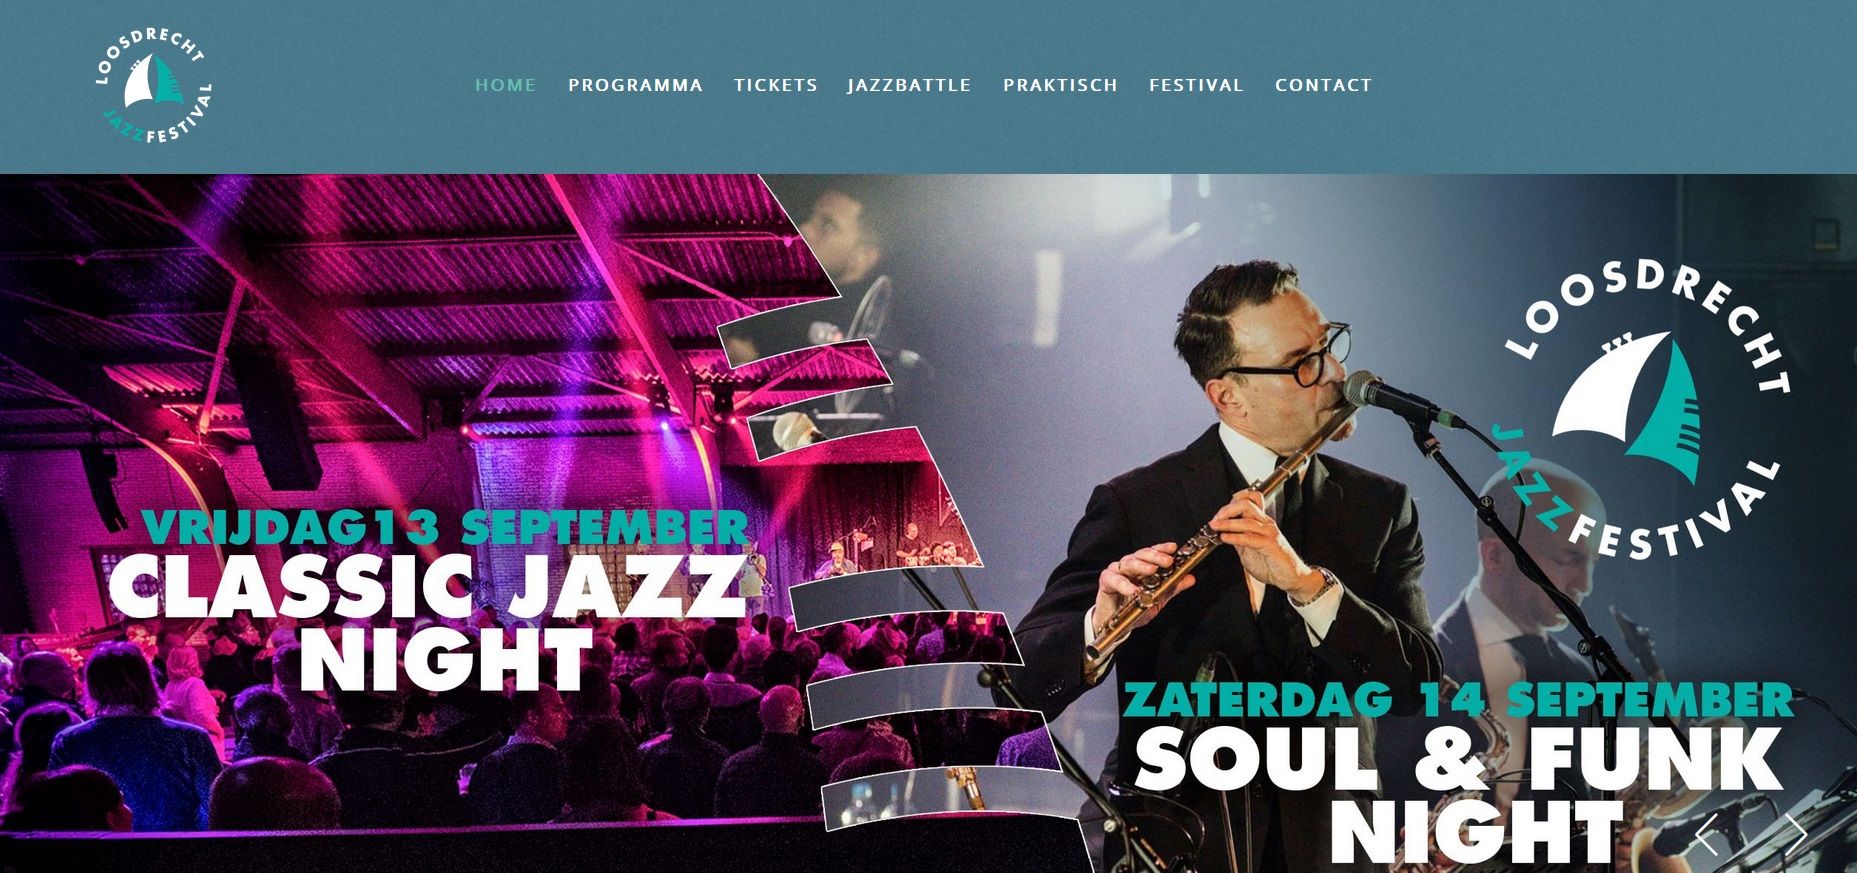 13-14 september 2019 Loosdrecht Jazz Festival